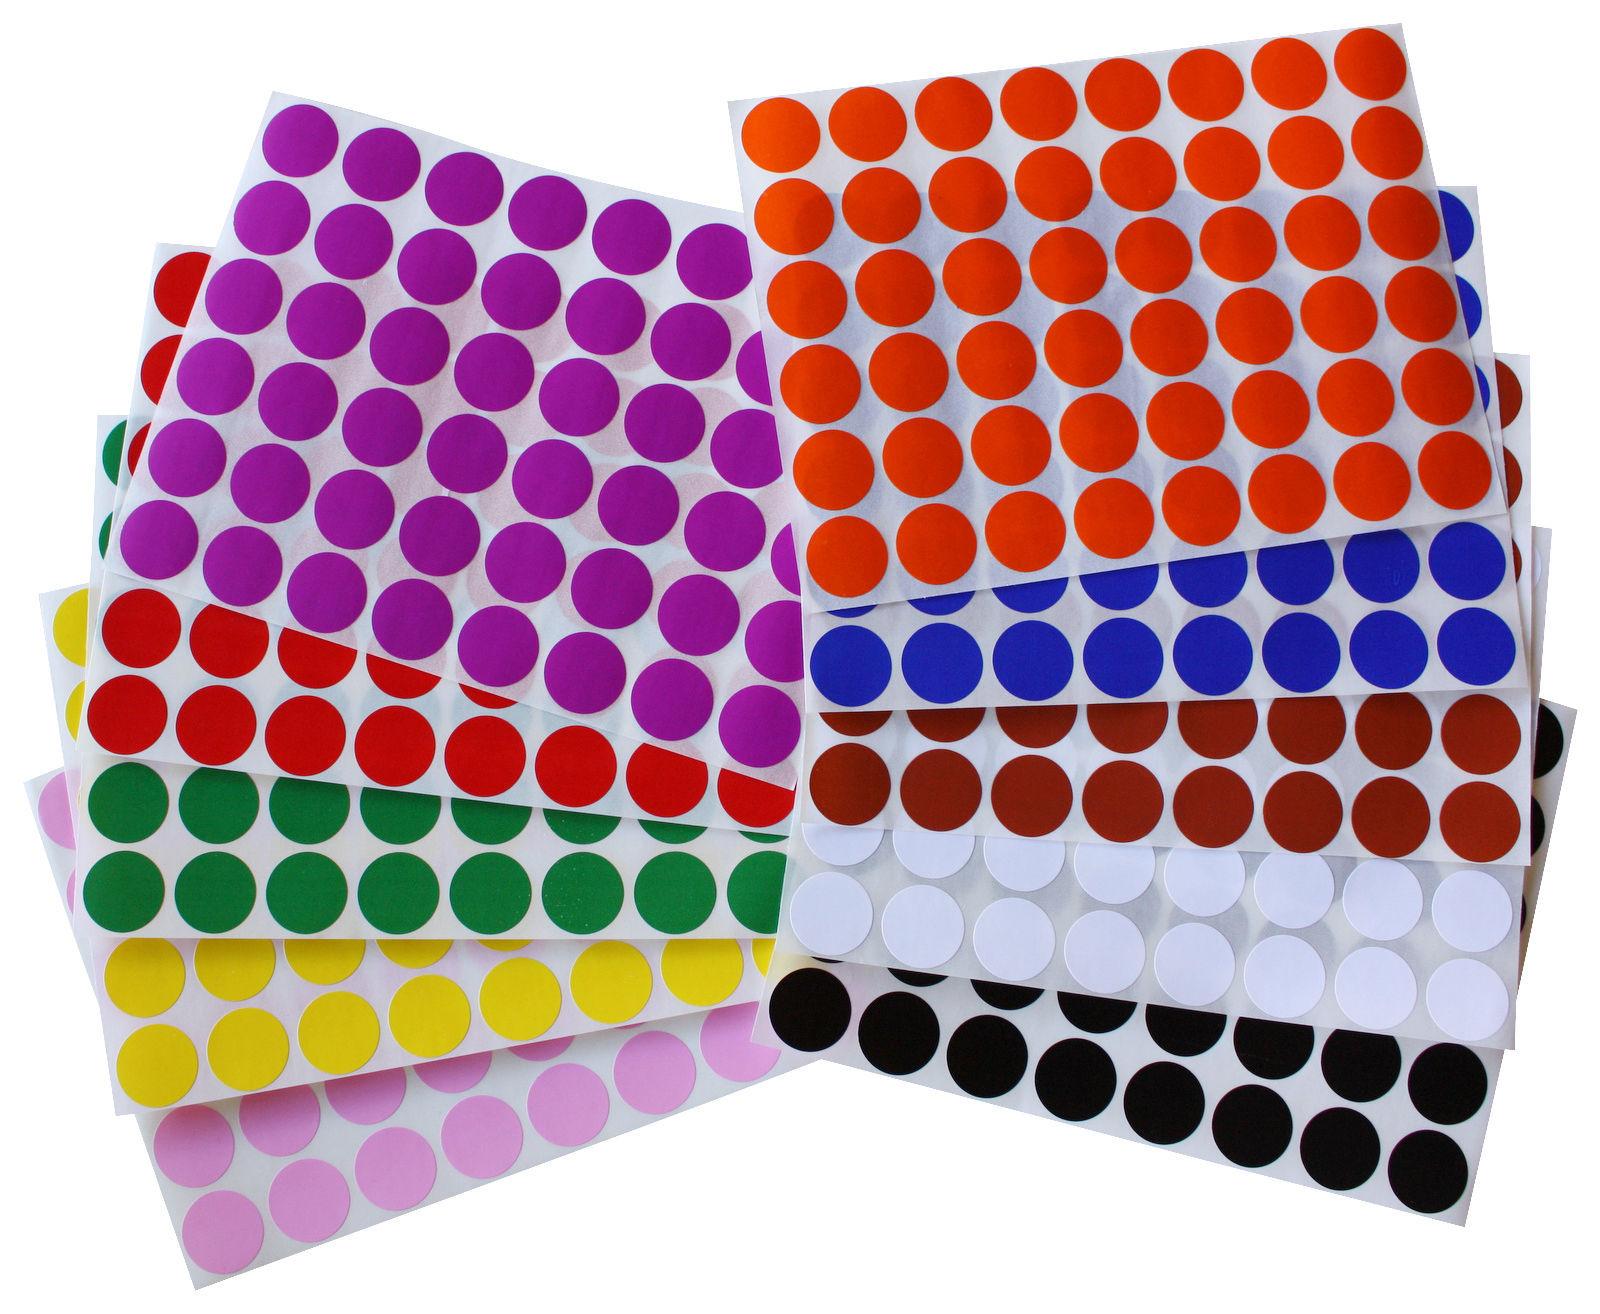 Colored Dot Stickers 28 Images 384 X 10mm Coloured Dot Stickers Sticky Adhesive 1 2 Quot